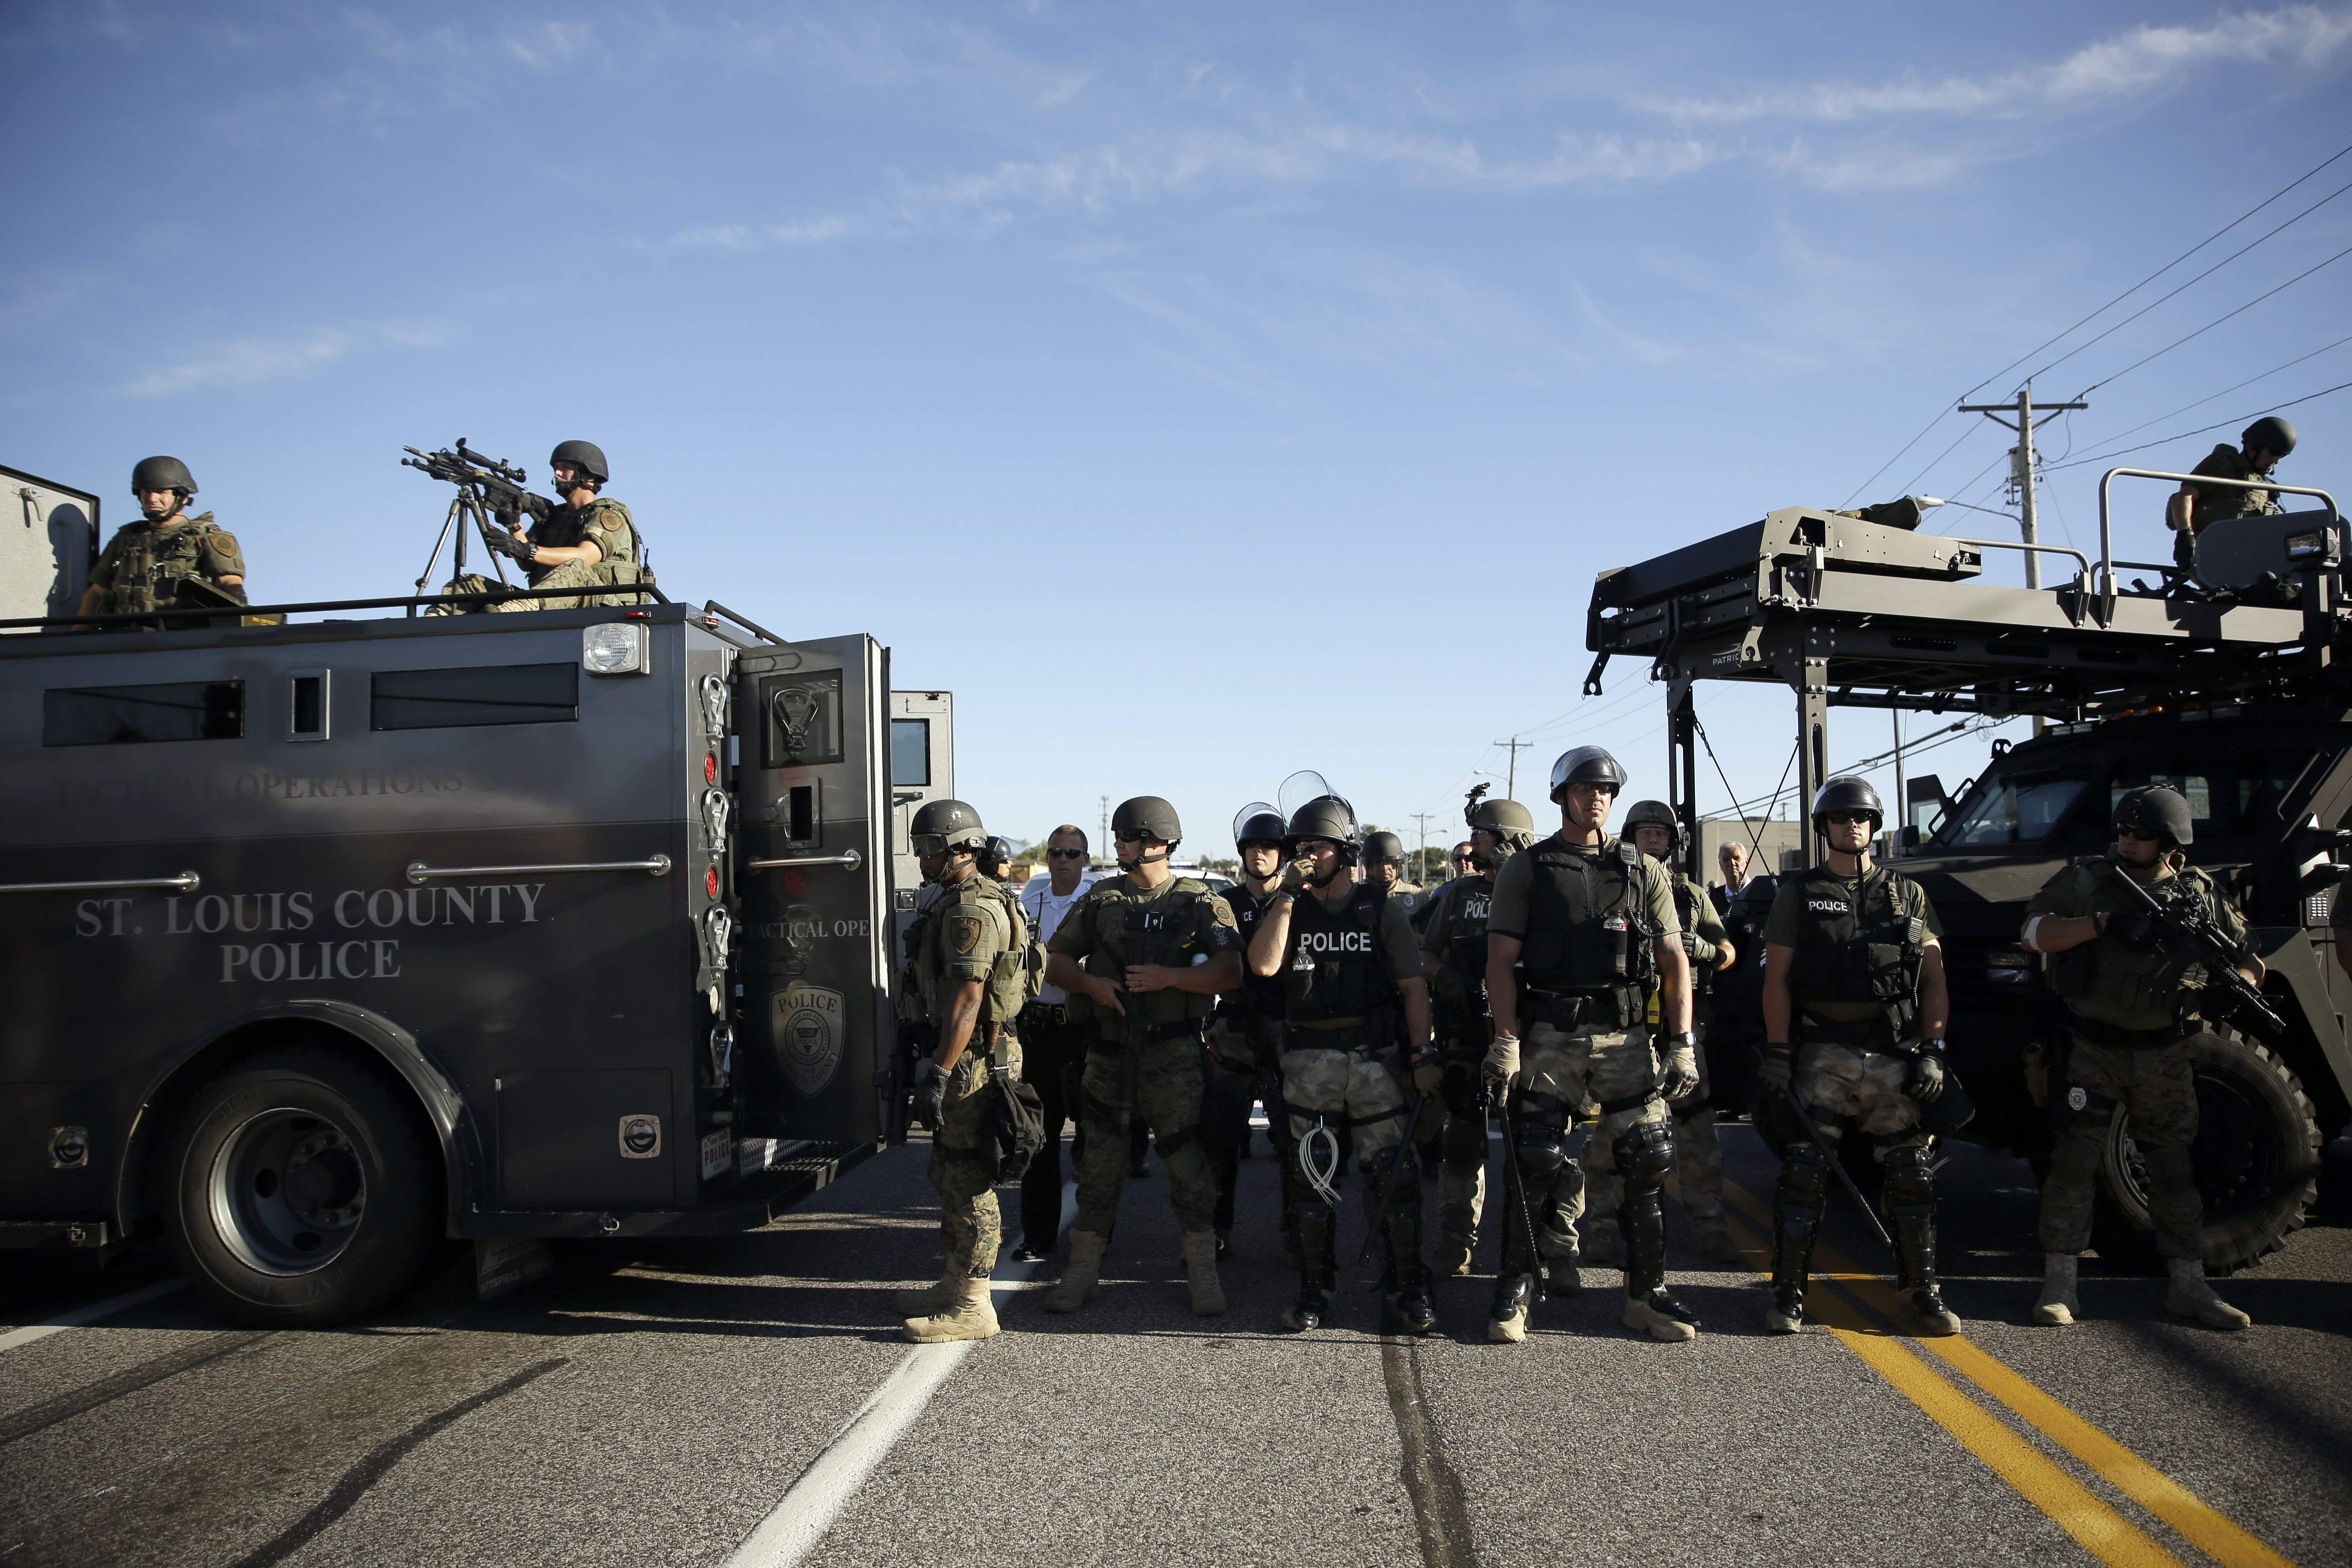 Police in riot gear watch protesters in Ferguson, Mo. on Aug. 13, 2014.